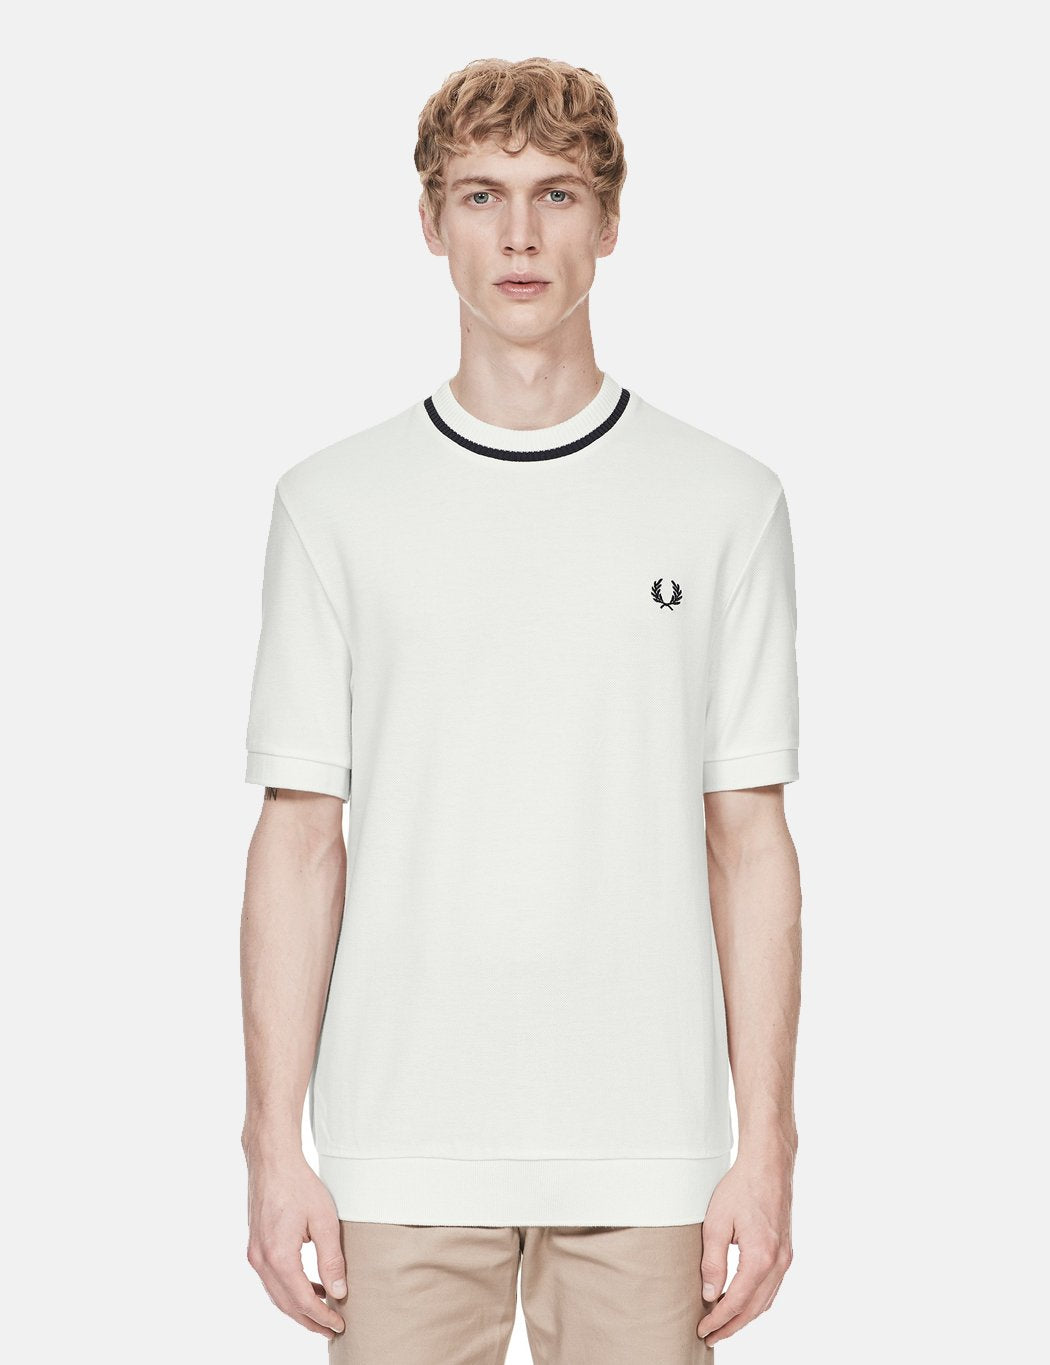 Fred Perry Crew Neck Pique T-Shirt - Snow White/Navy Blue